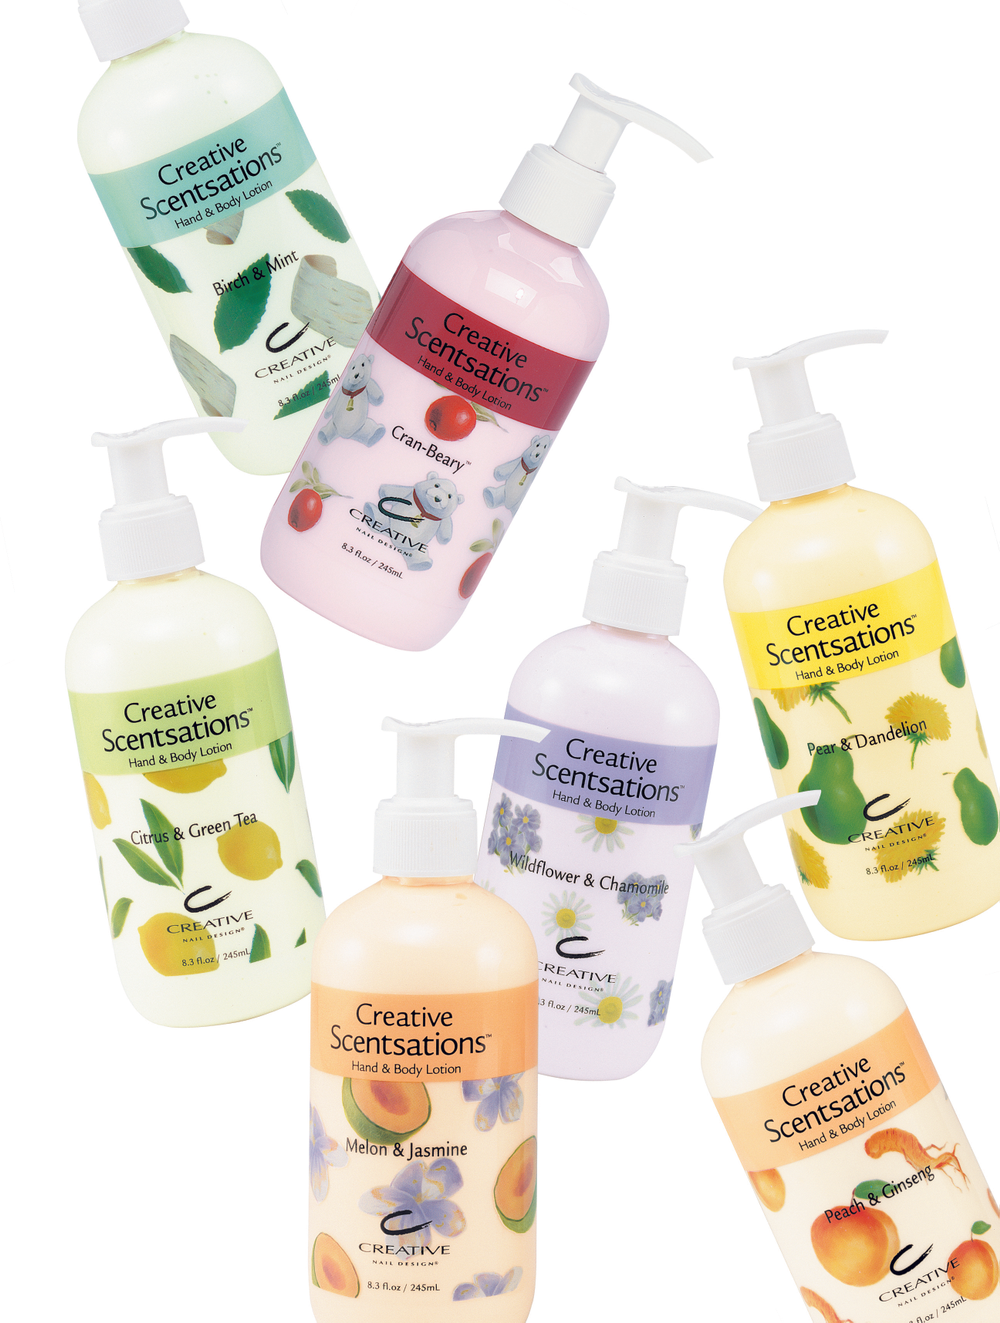 <p><strong>2006 Favorite Lotion for Hands and Body: Creative Nail Design Scentsations Hand and Body Lotions</strong></p> <p>2nd: OPI Products Avojuice Skin Quenchers<br />3rd: Nail Tek 7 Days to Beautiful Hands Advanced Hydrating Cr&egrave;me<br />4th: Cuccio Natural&eacute; Milk and Honey Butter Blend<br />5th: Haken Body Butter</p>